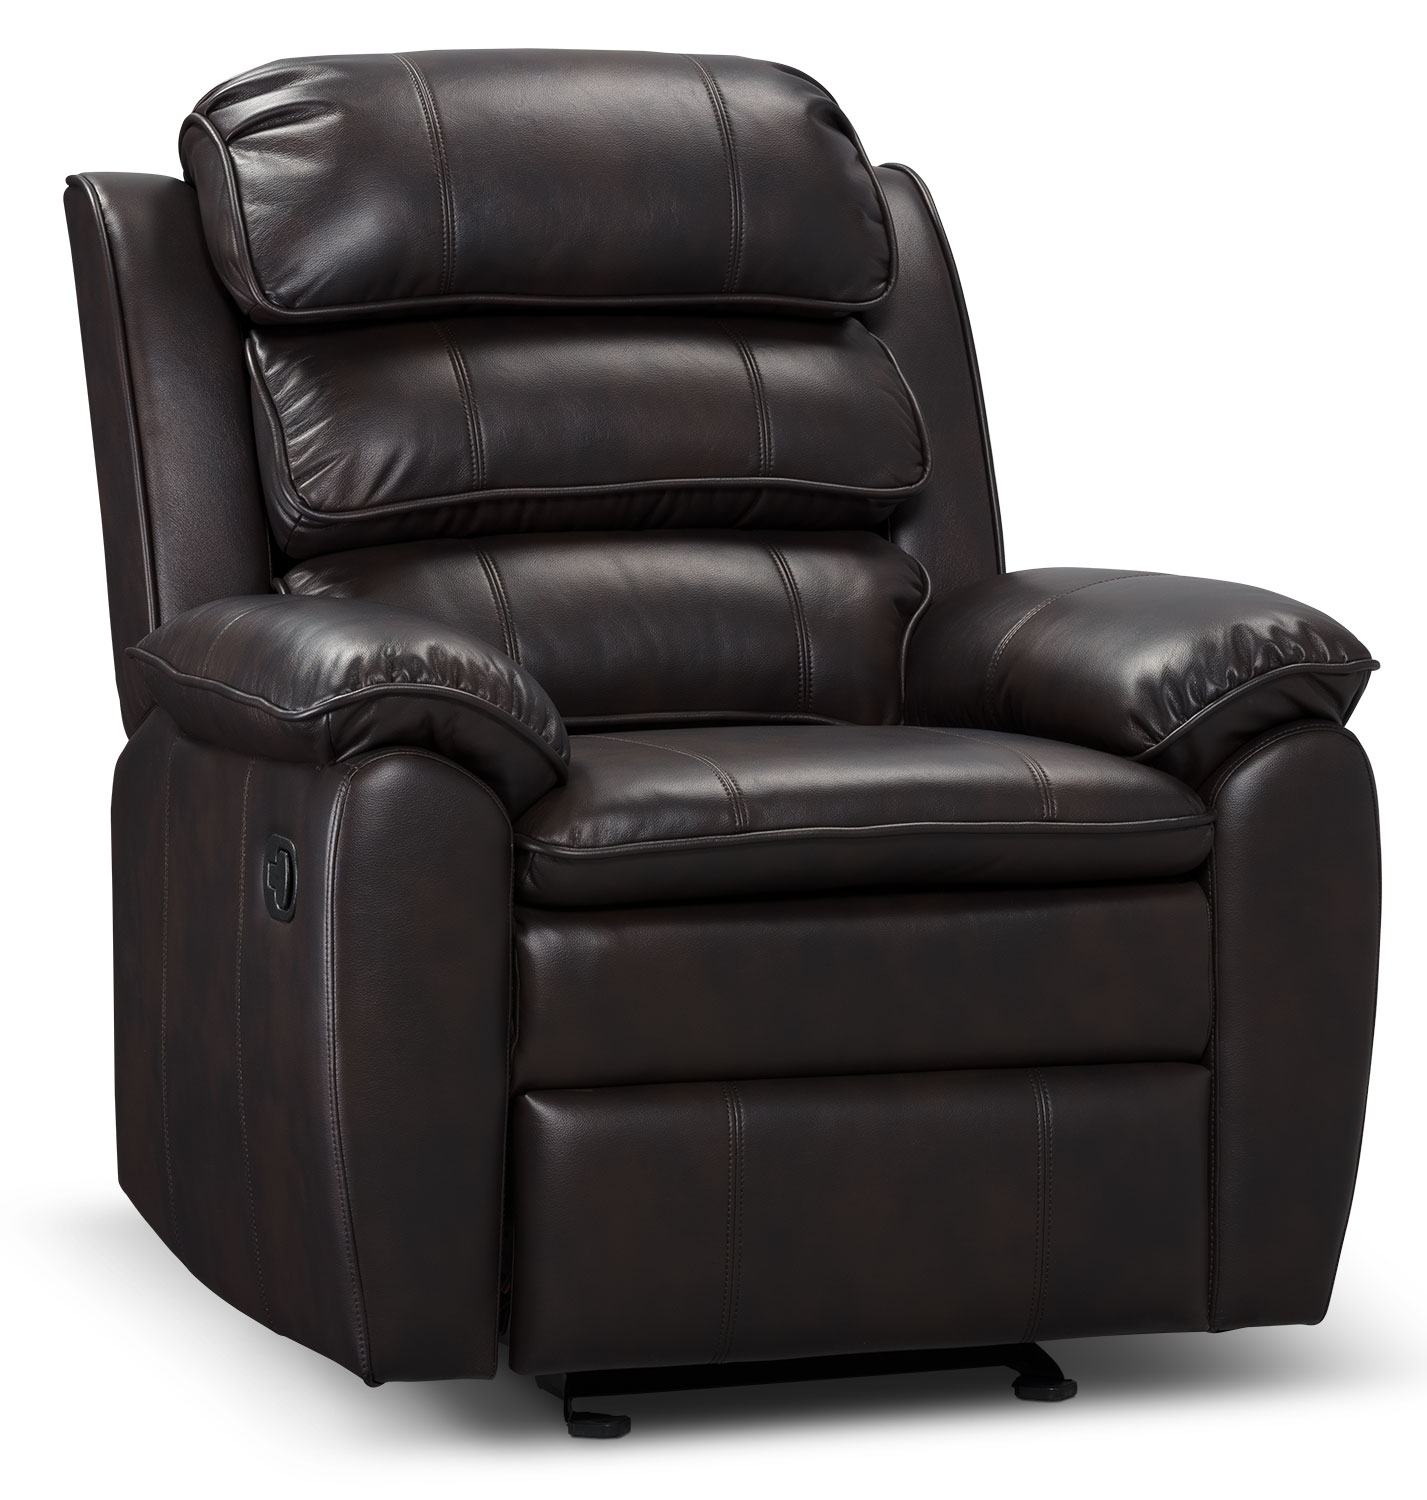 Living Room Furniture - Adam Leather-Look Fabric Reclining Glider Chair – Brown